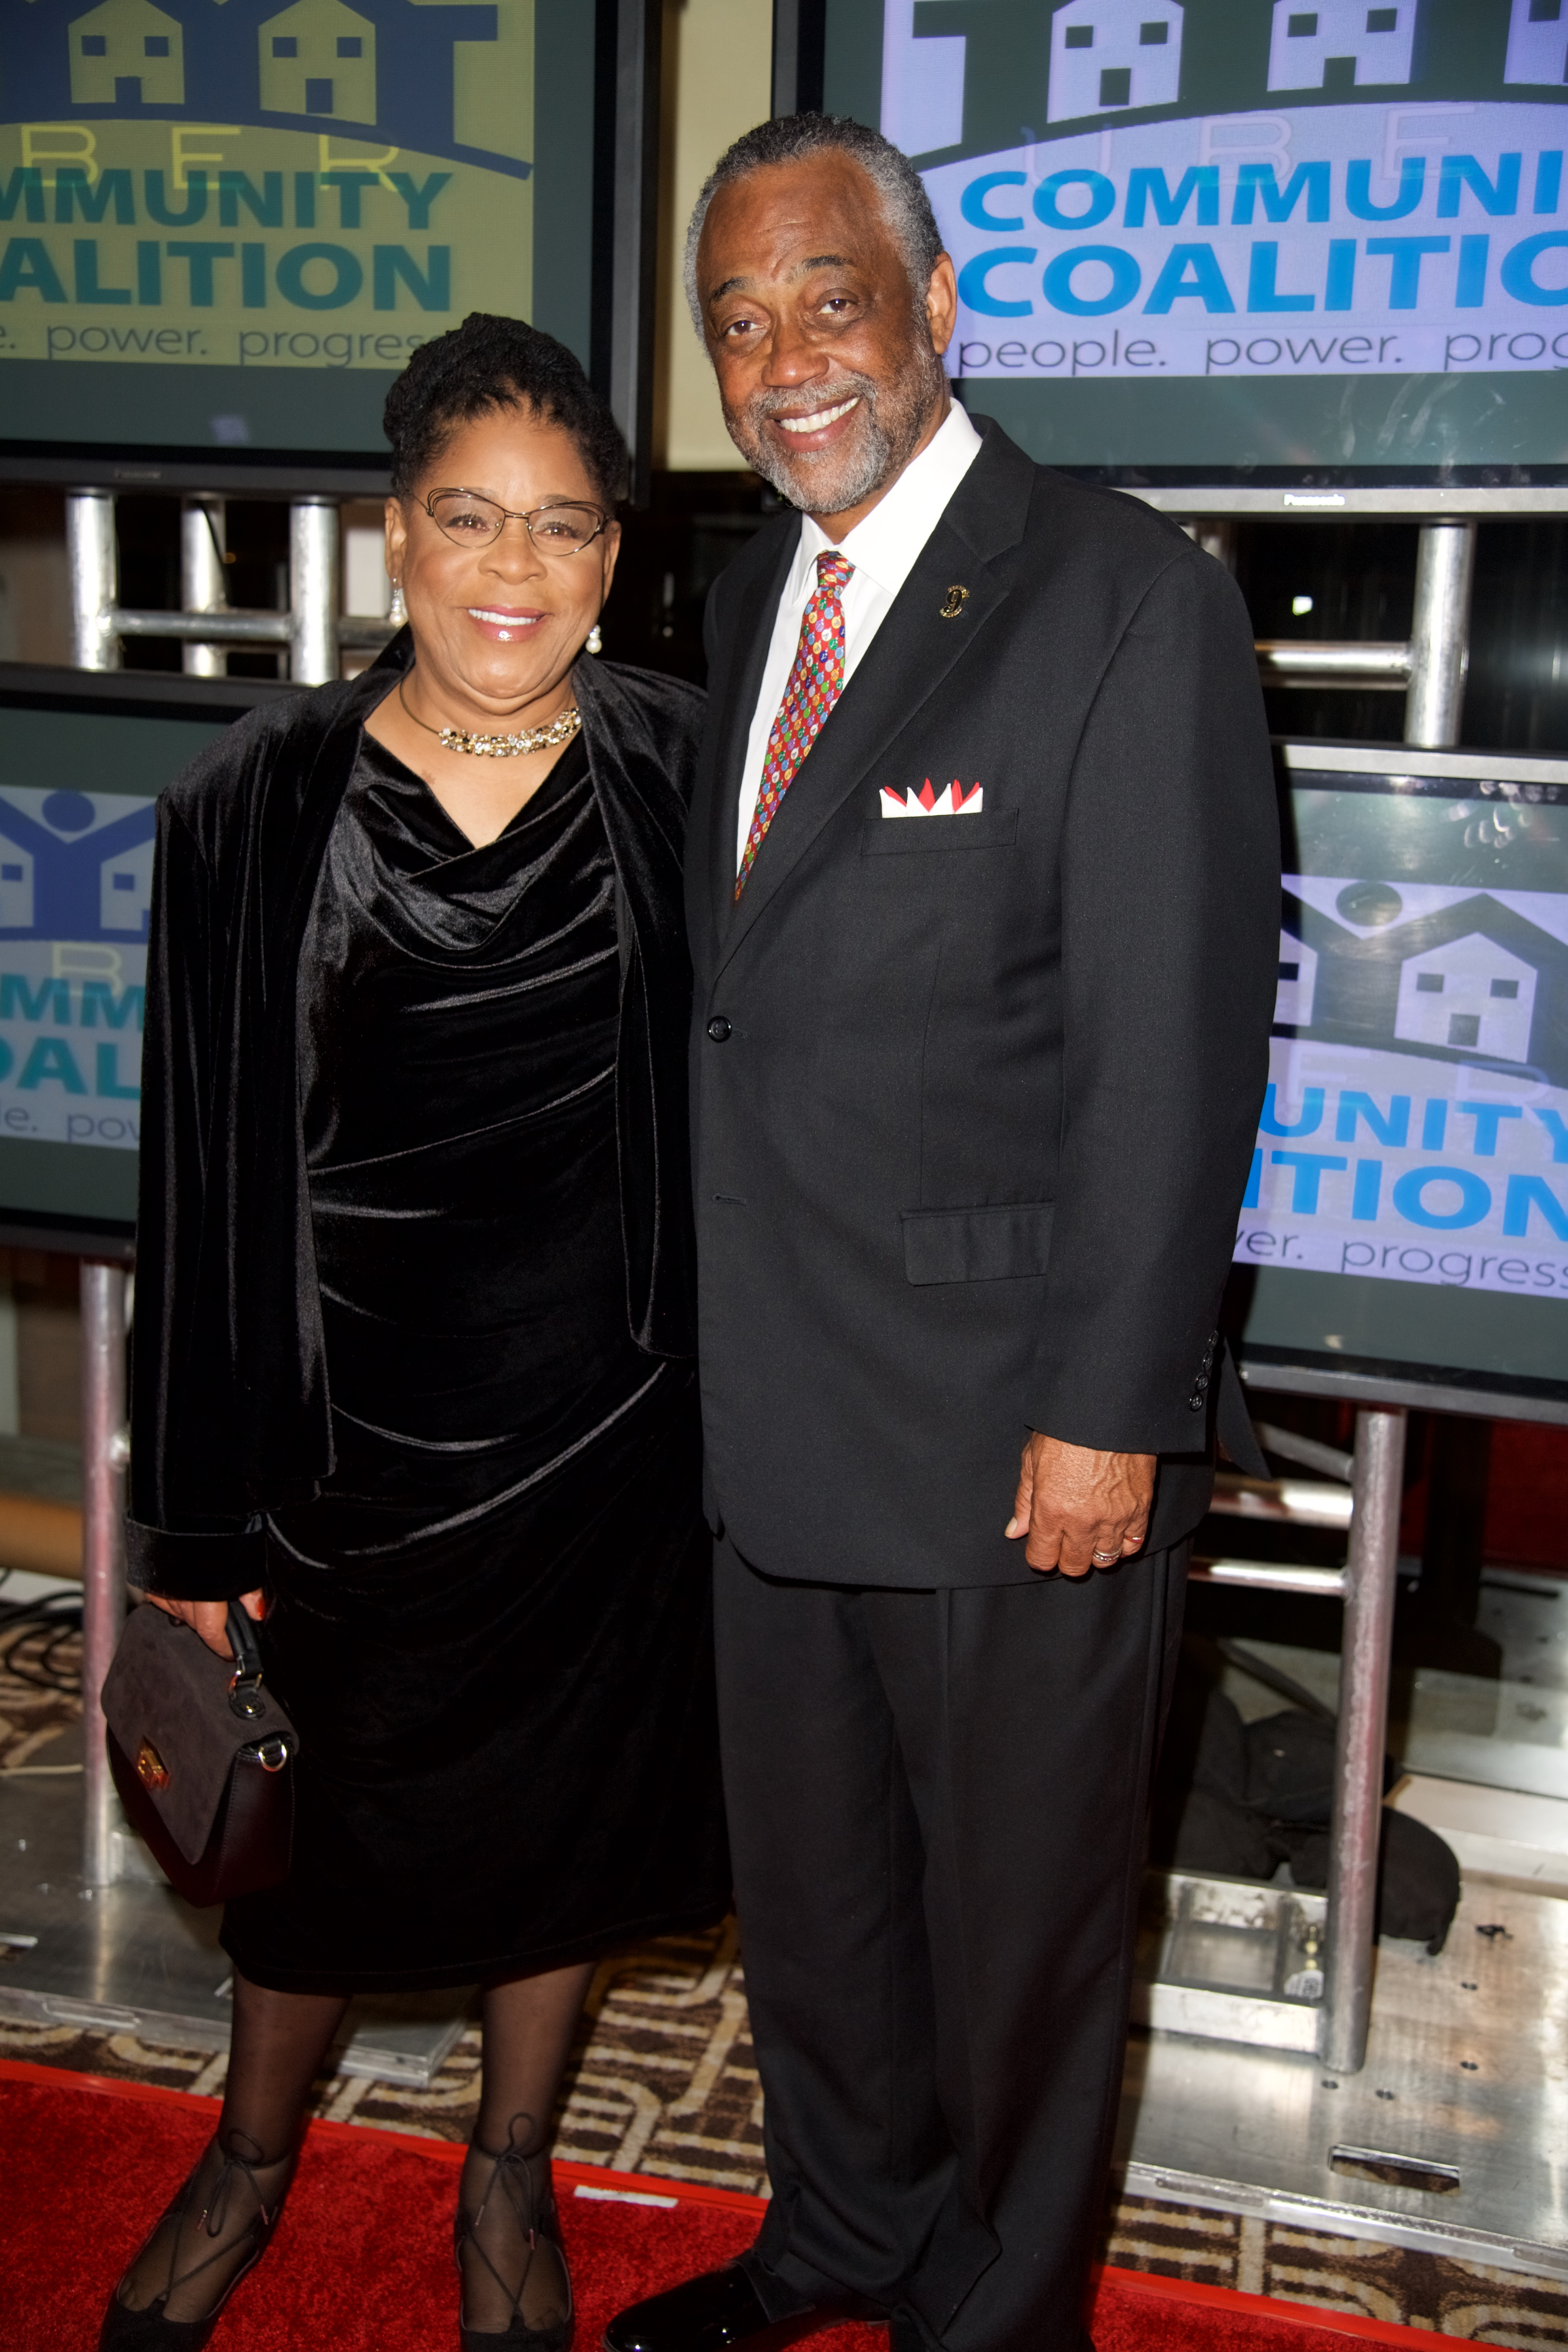 L-R Founder of A New Way of Life Project Susan Burton and LA City Councilmember, Curren D. Price, Jr.